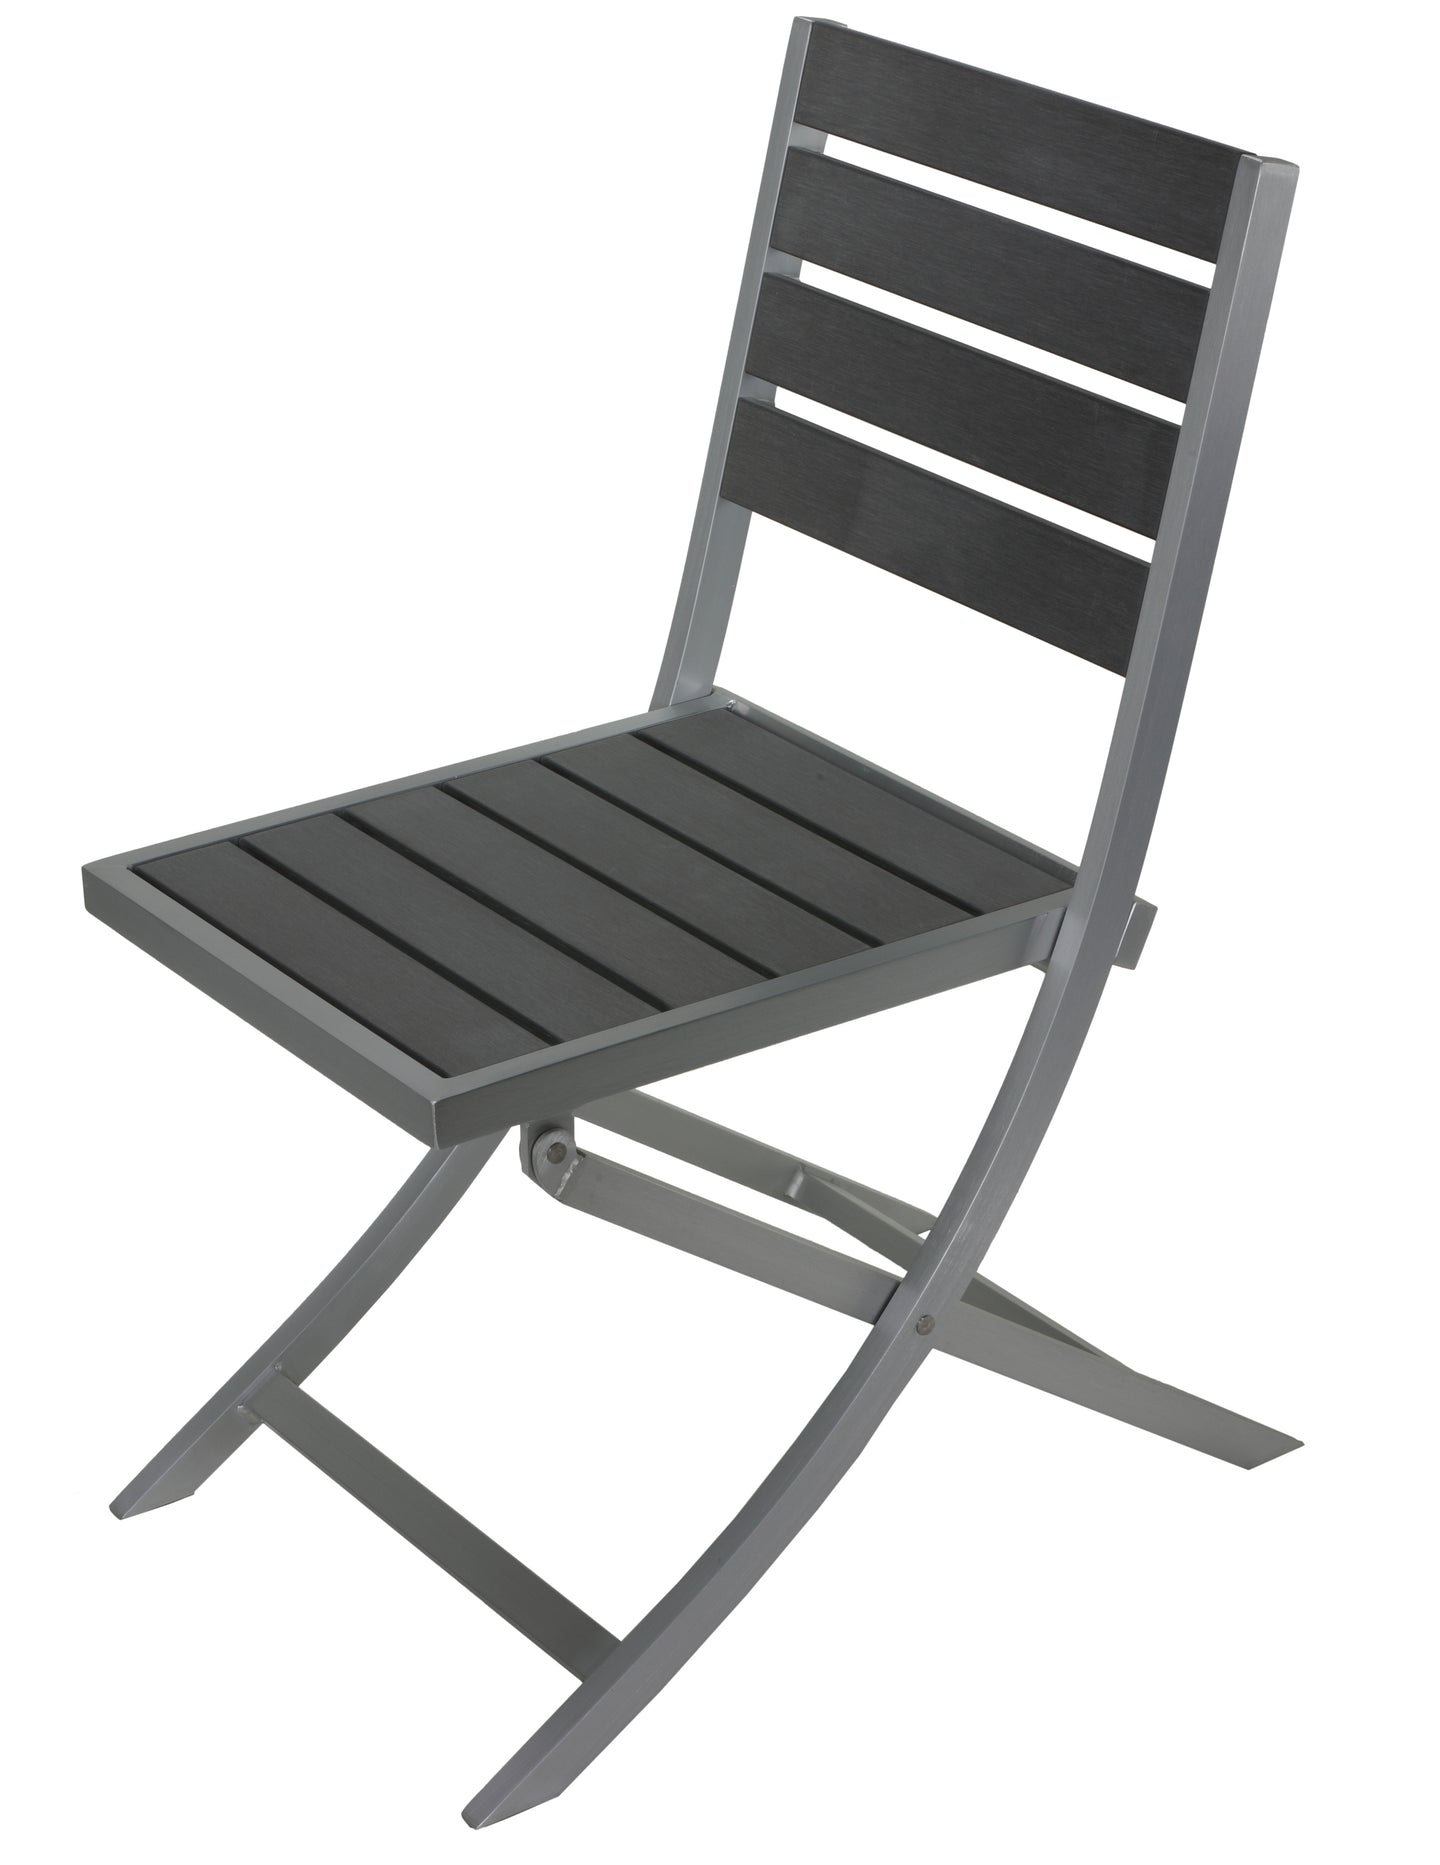 Maxwell Aluminum Outdoor Folding Chair in Slate Grey Poly Resin, Brushed Nickel 1 chair